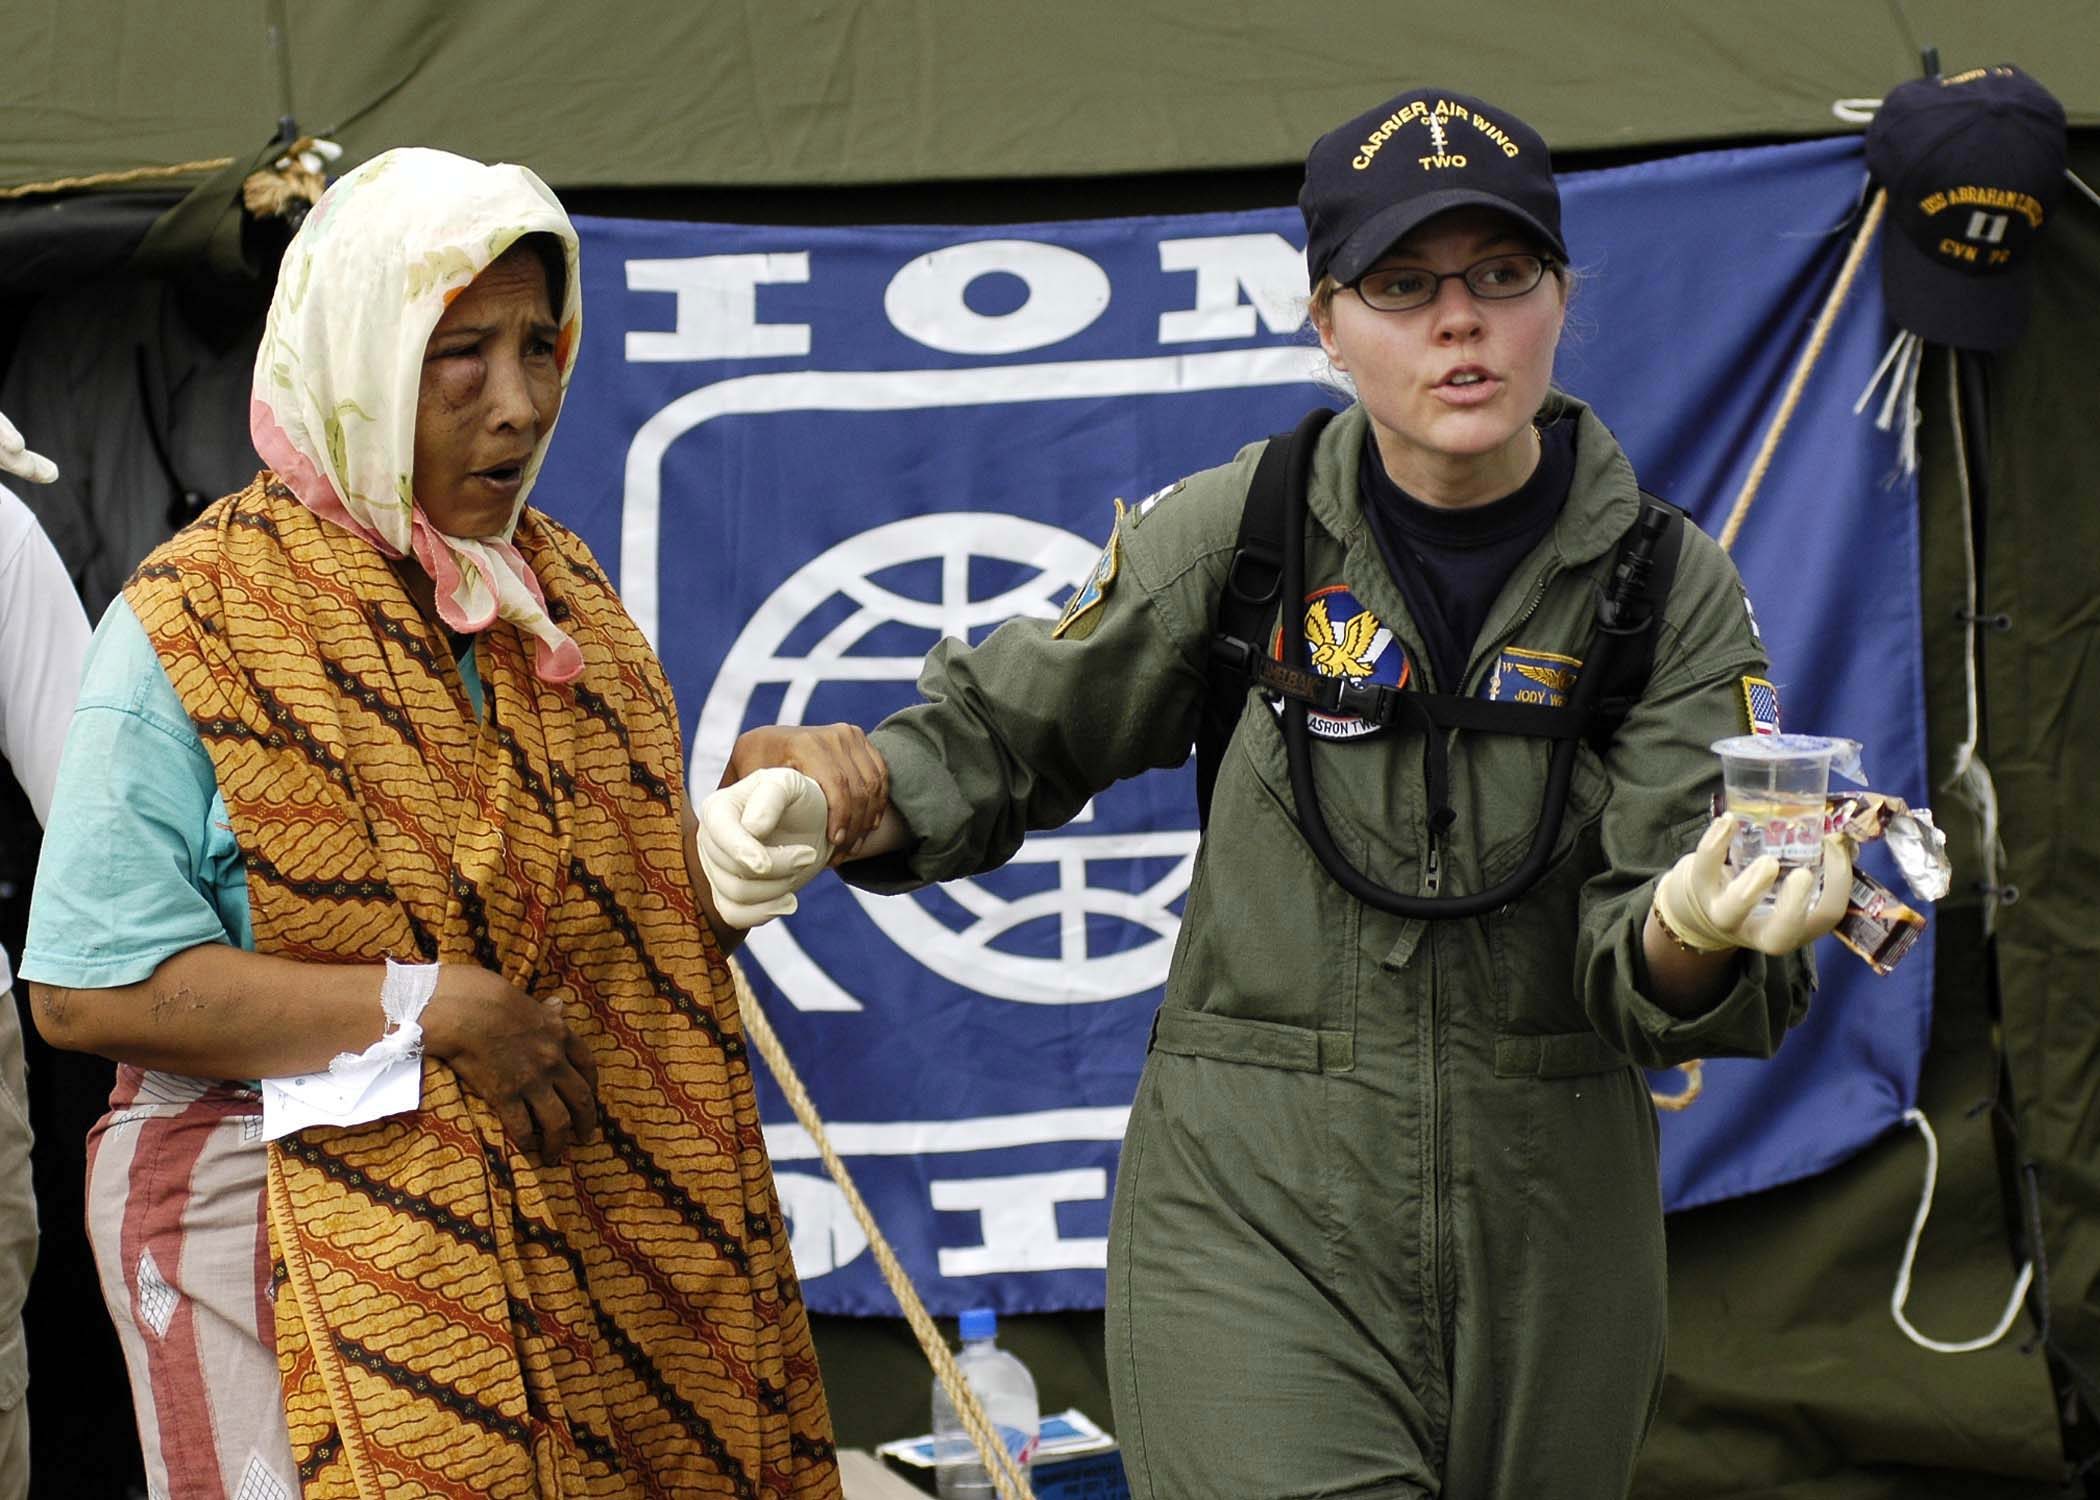 https://upload.wikimedia.org/wikipedia/commons/9/9e/US_Navy_050103-N-4166B-237_Lt._Jody_Weinstein_helps_an_injured_Indonesian_woman_into_a_medical_evacuation_vehicle_after_she_was_transported_from_a_coastal_village_on_the_island_of_Sumatra%2C_Indonesia.jpg